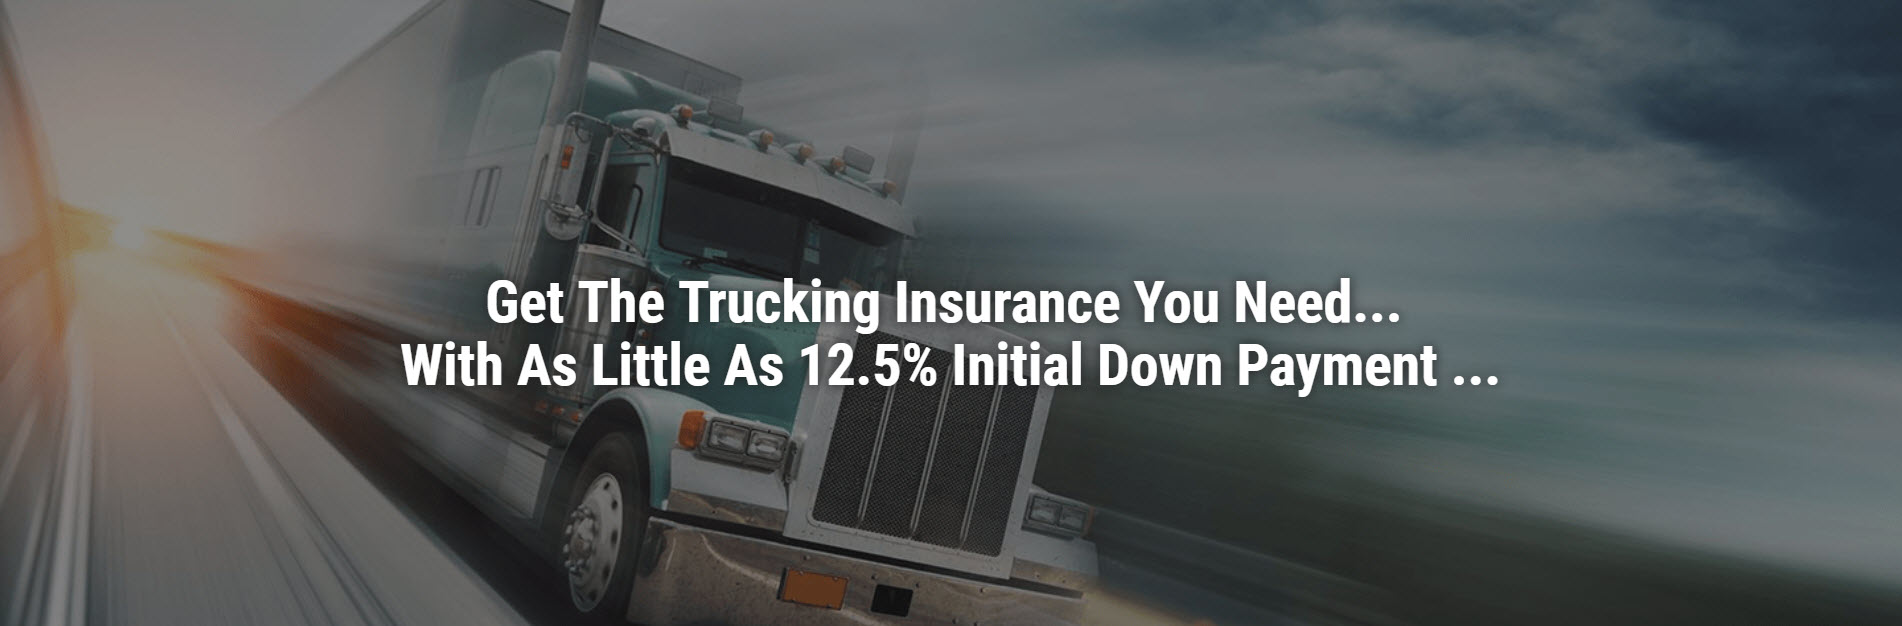 Trucking Insurance for 12.5% Initial Down Payment